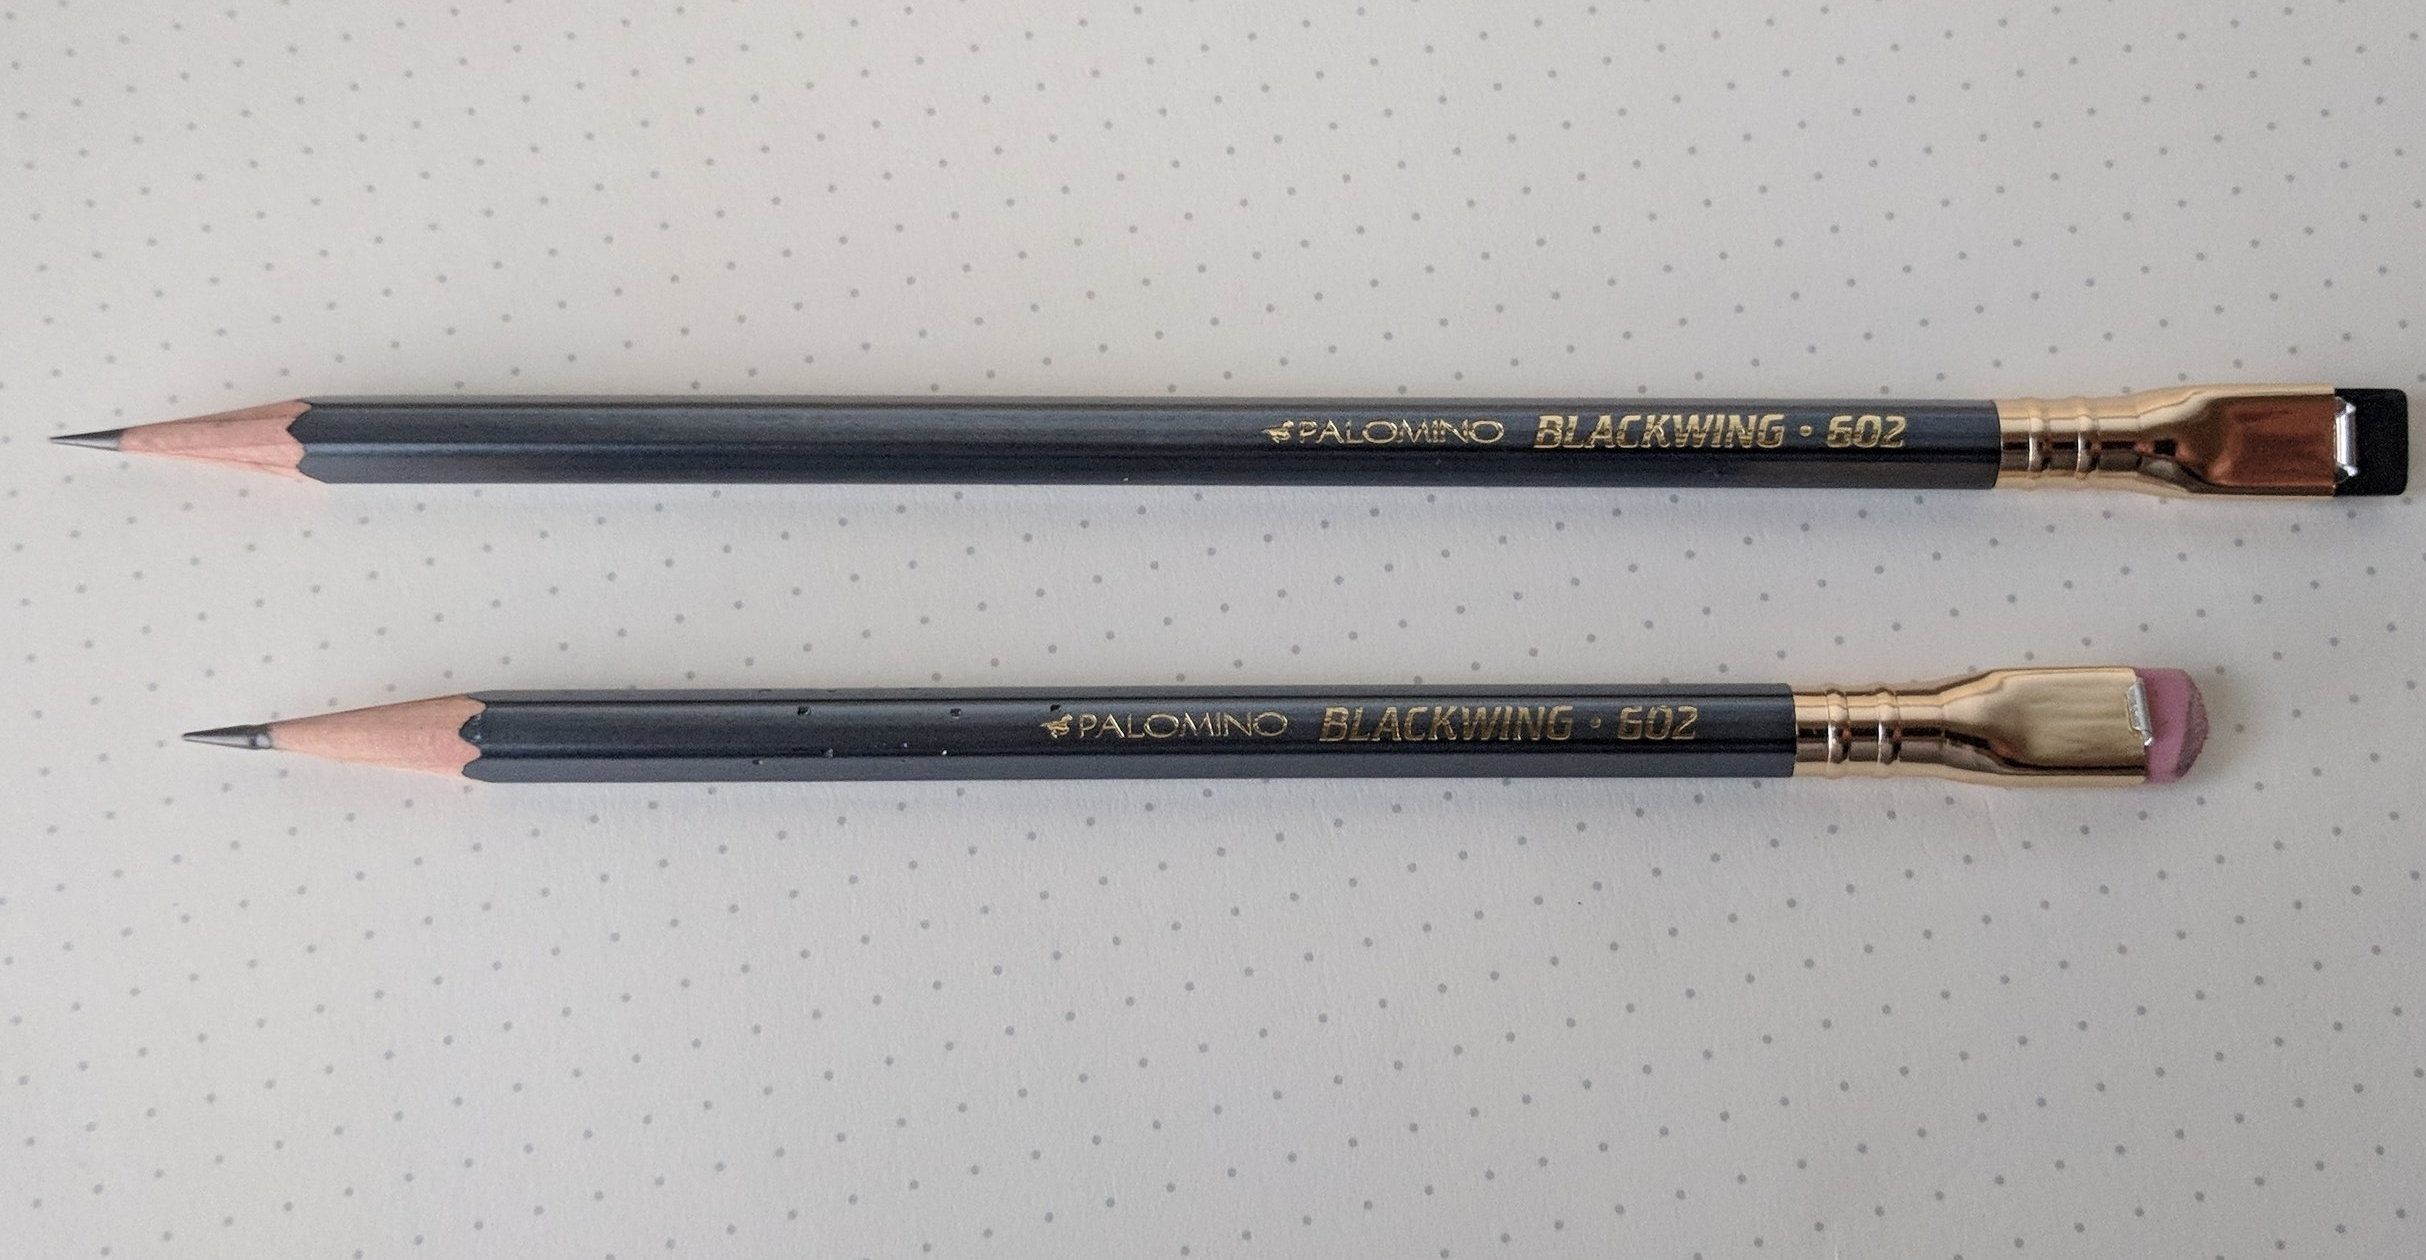 Palomino-Blackwing-602